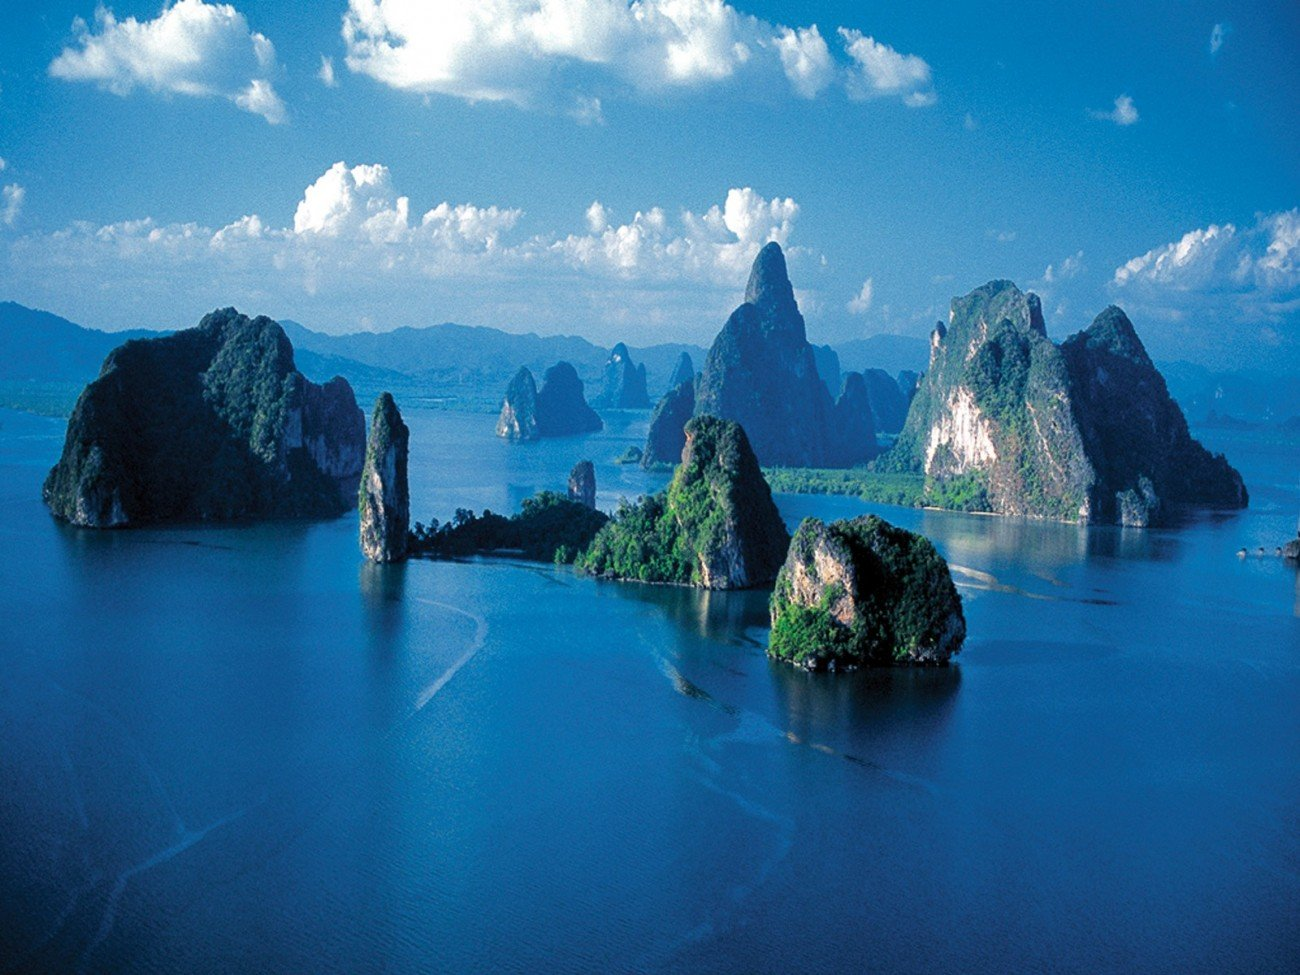 thailand-yacht-charter-7-days-route-itinerary